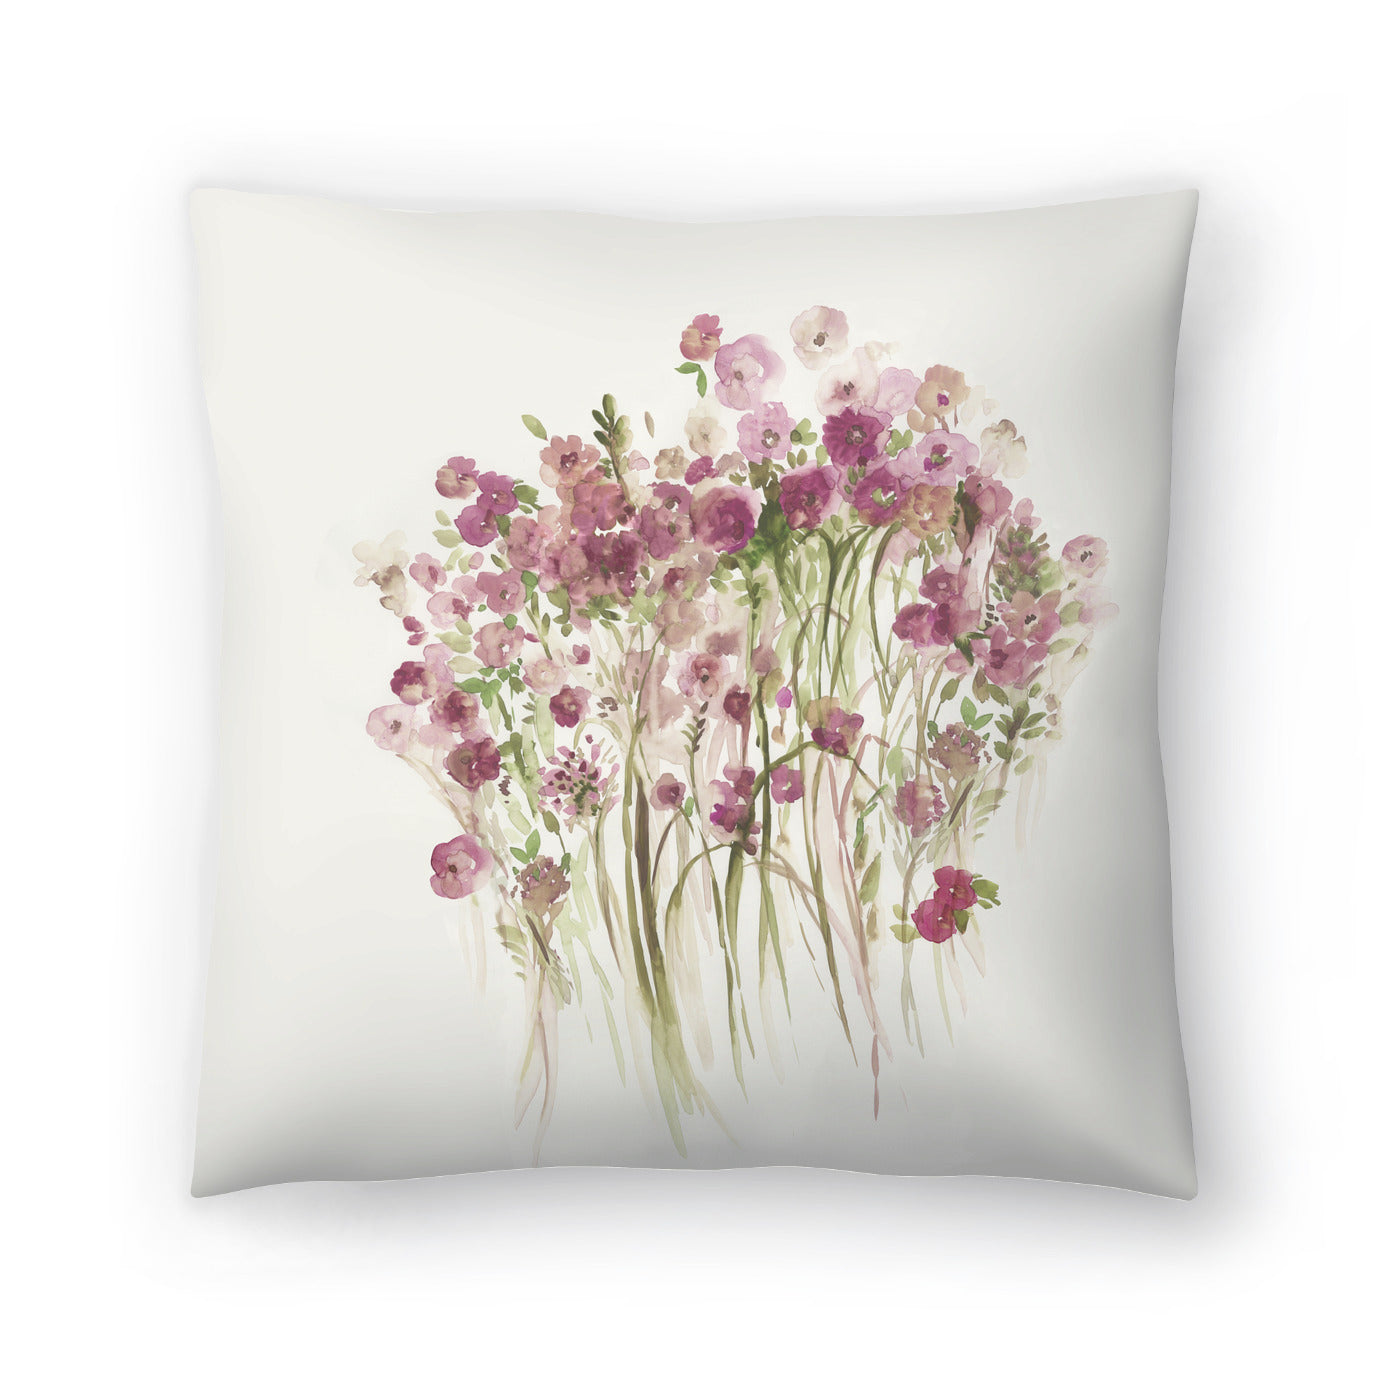 Pink Spring Garden by PI Creative Art Decorative Pillow - Decorative Pillow - Americanflat